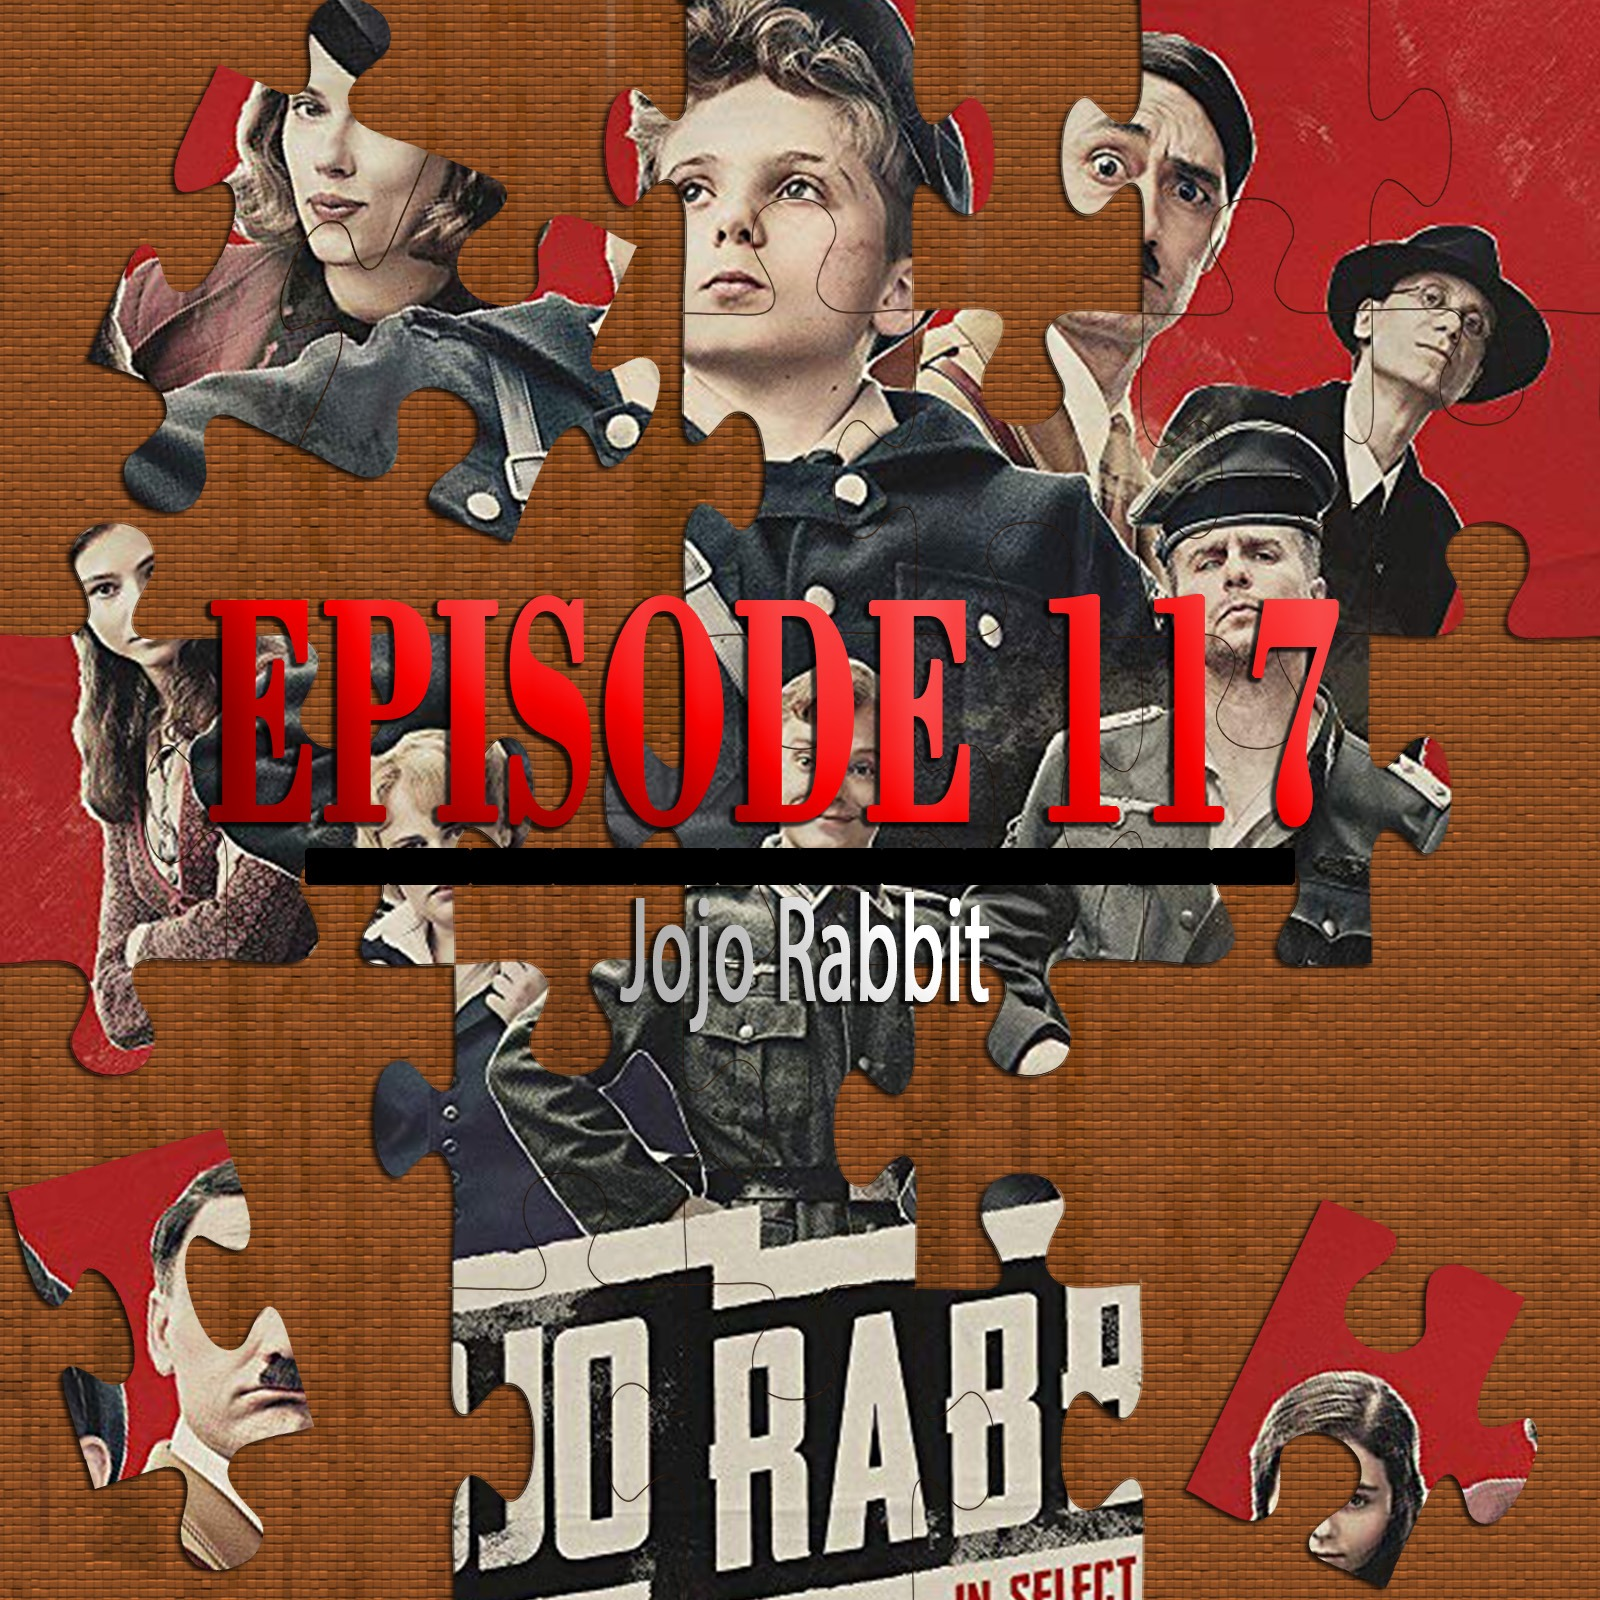 Jojo Rabbit (Featuring Jason Harris)